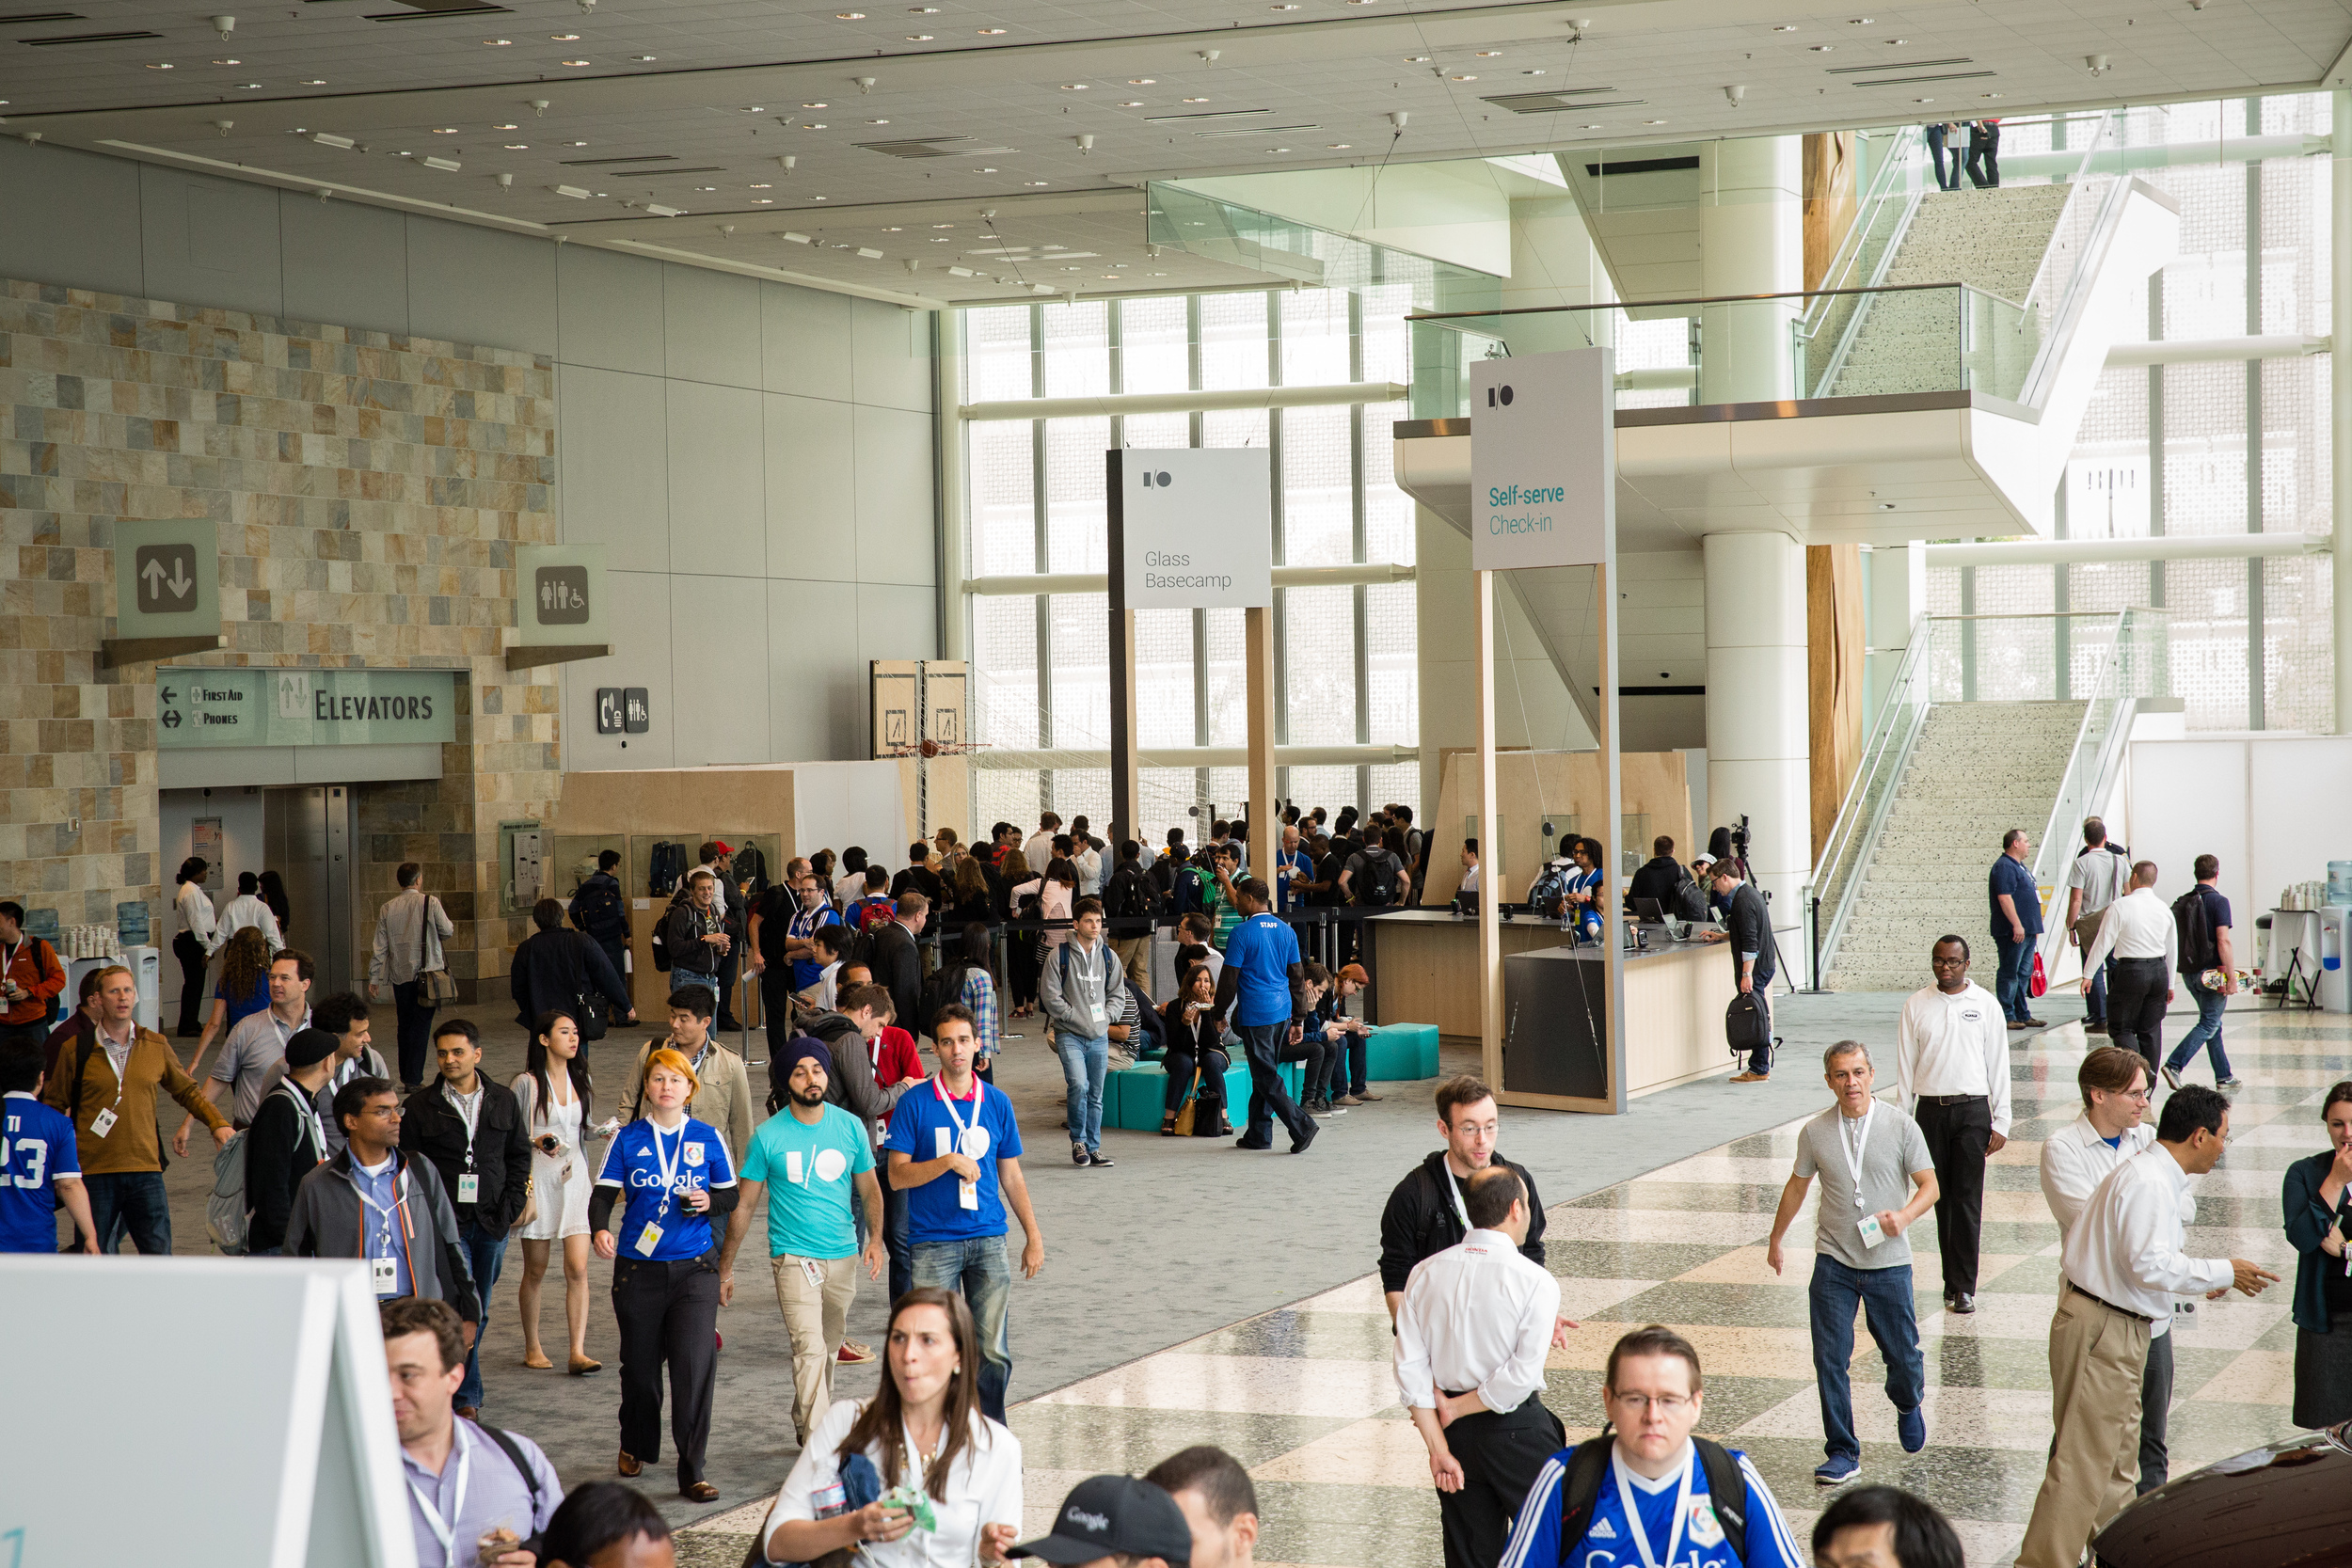 I/O 2014: Glass Basecamp